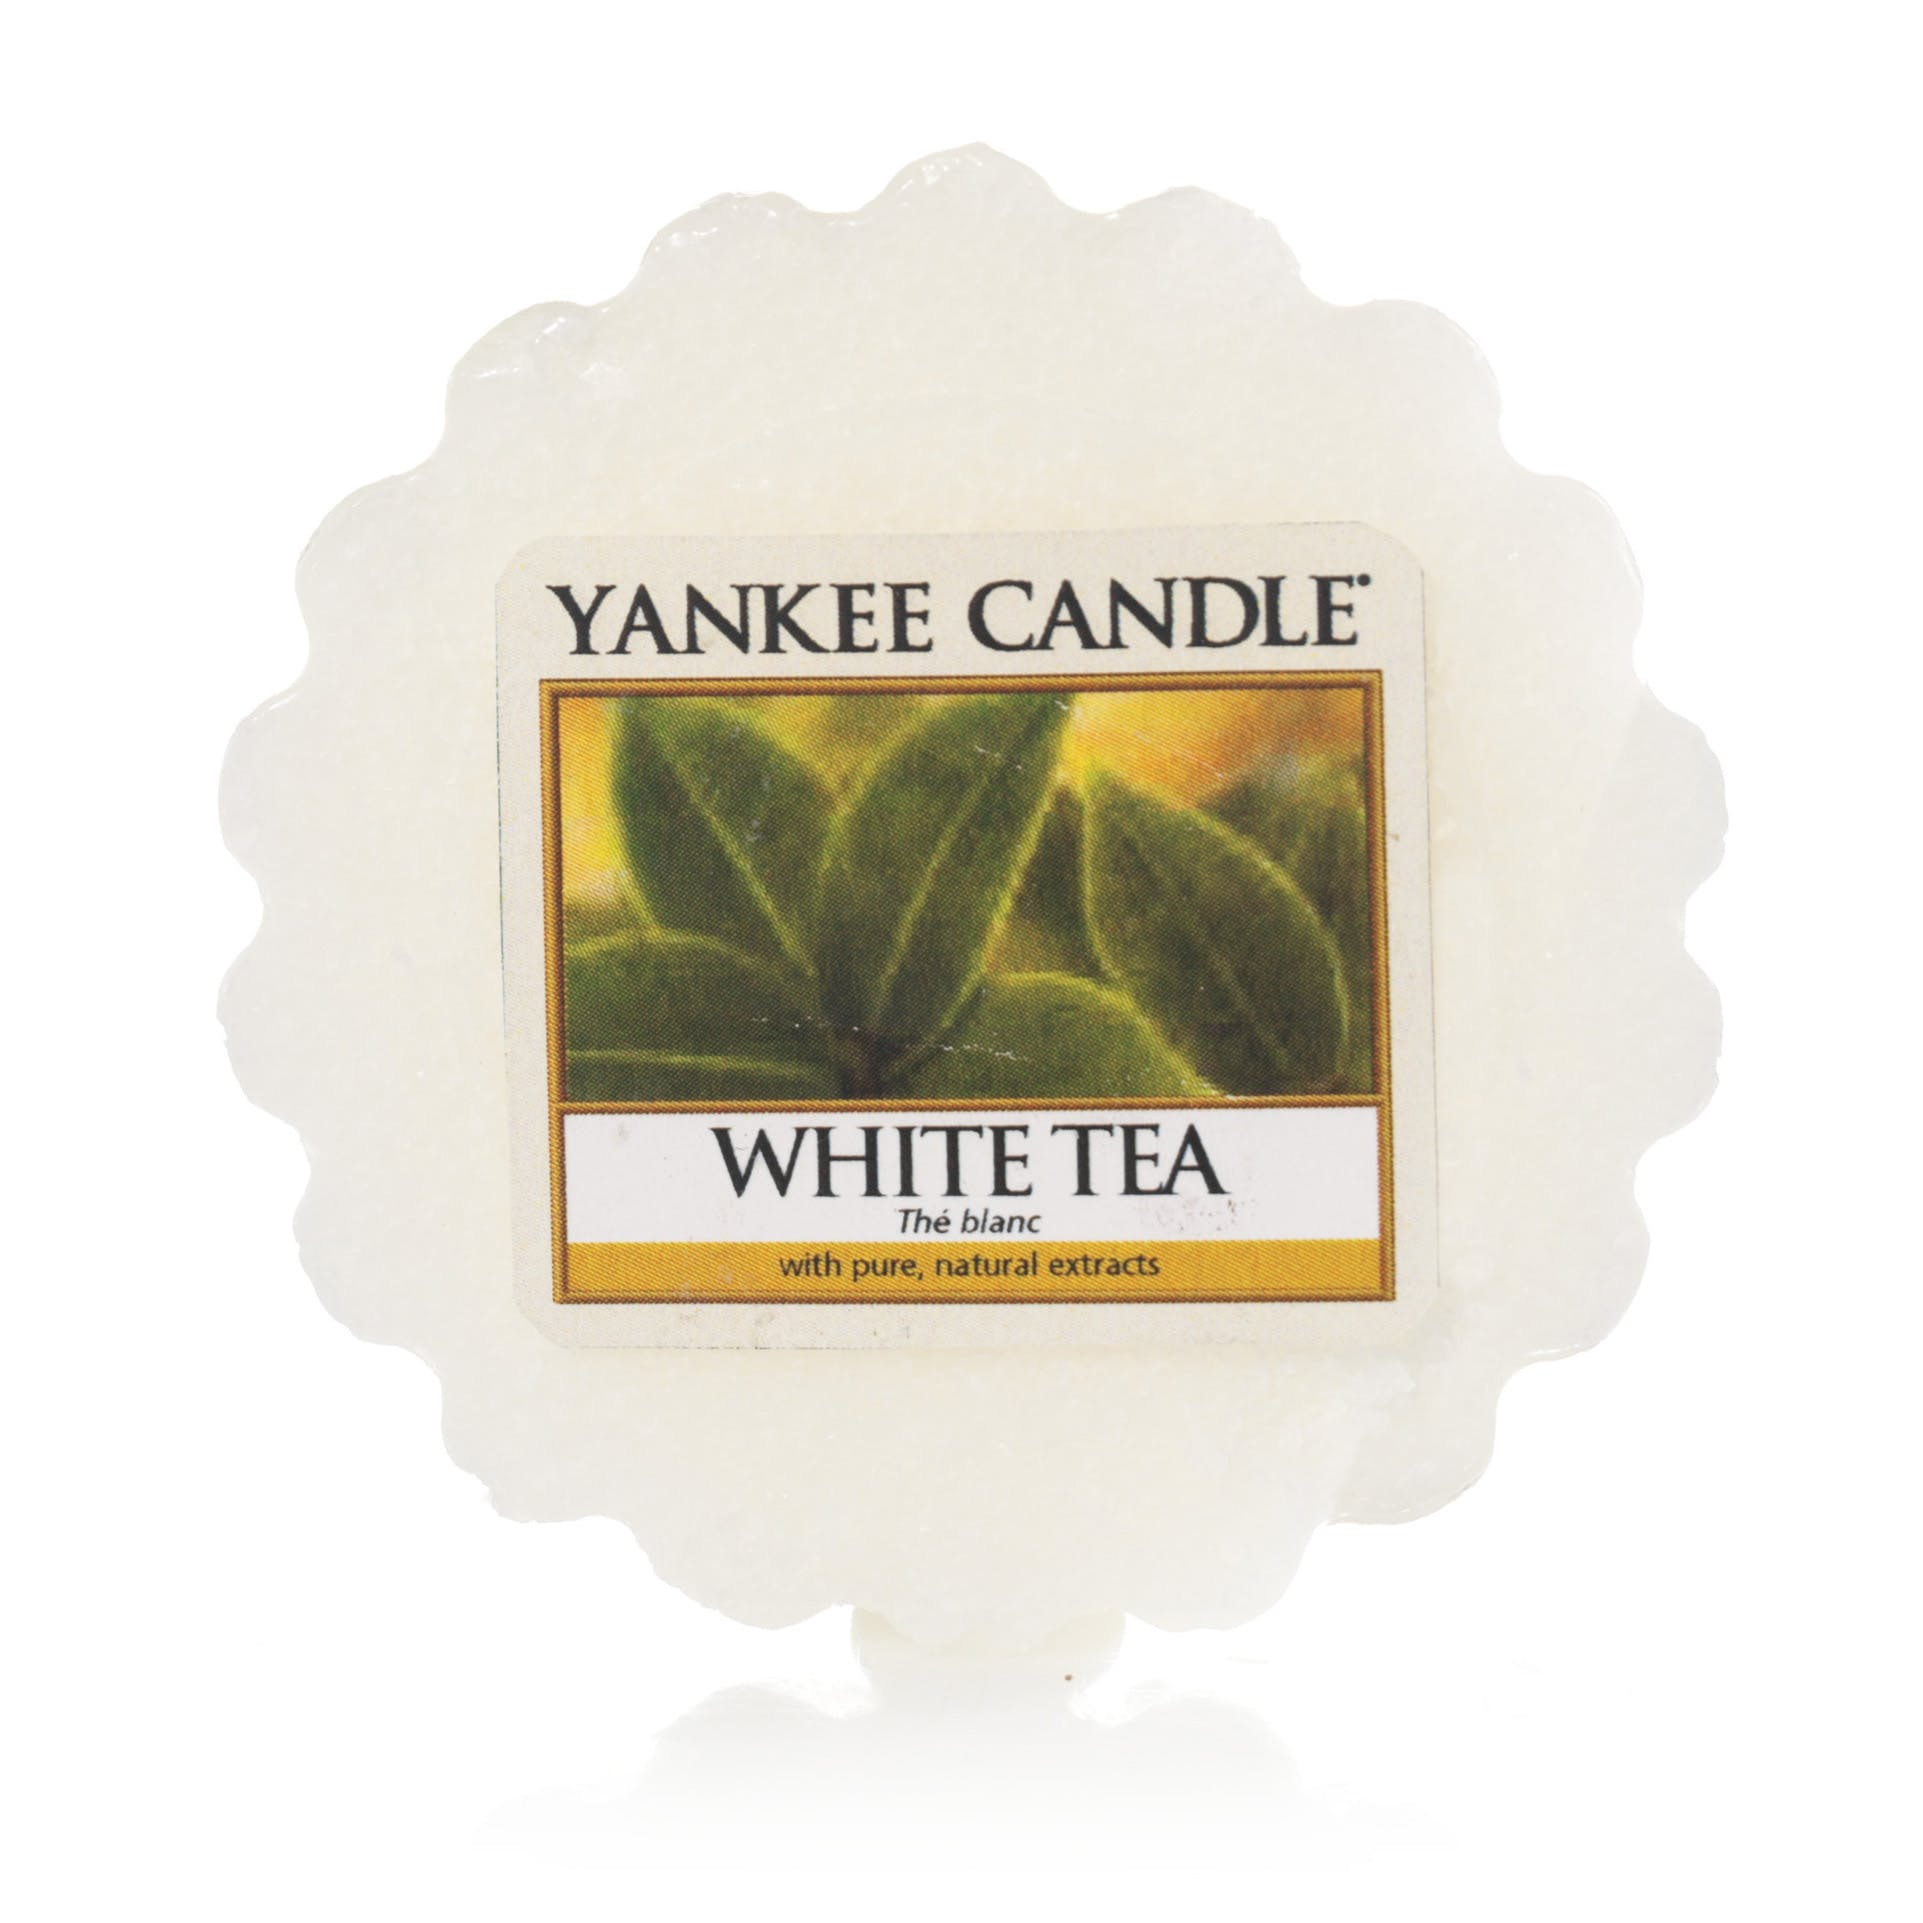 Thé Blanc tartelette YANKEE CANDLE